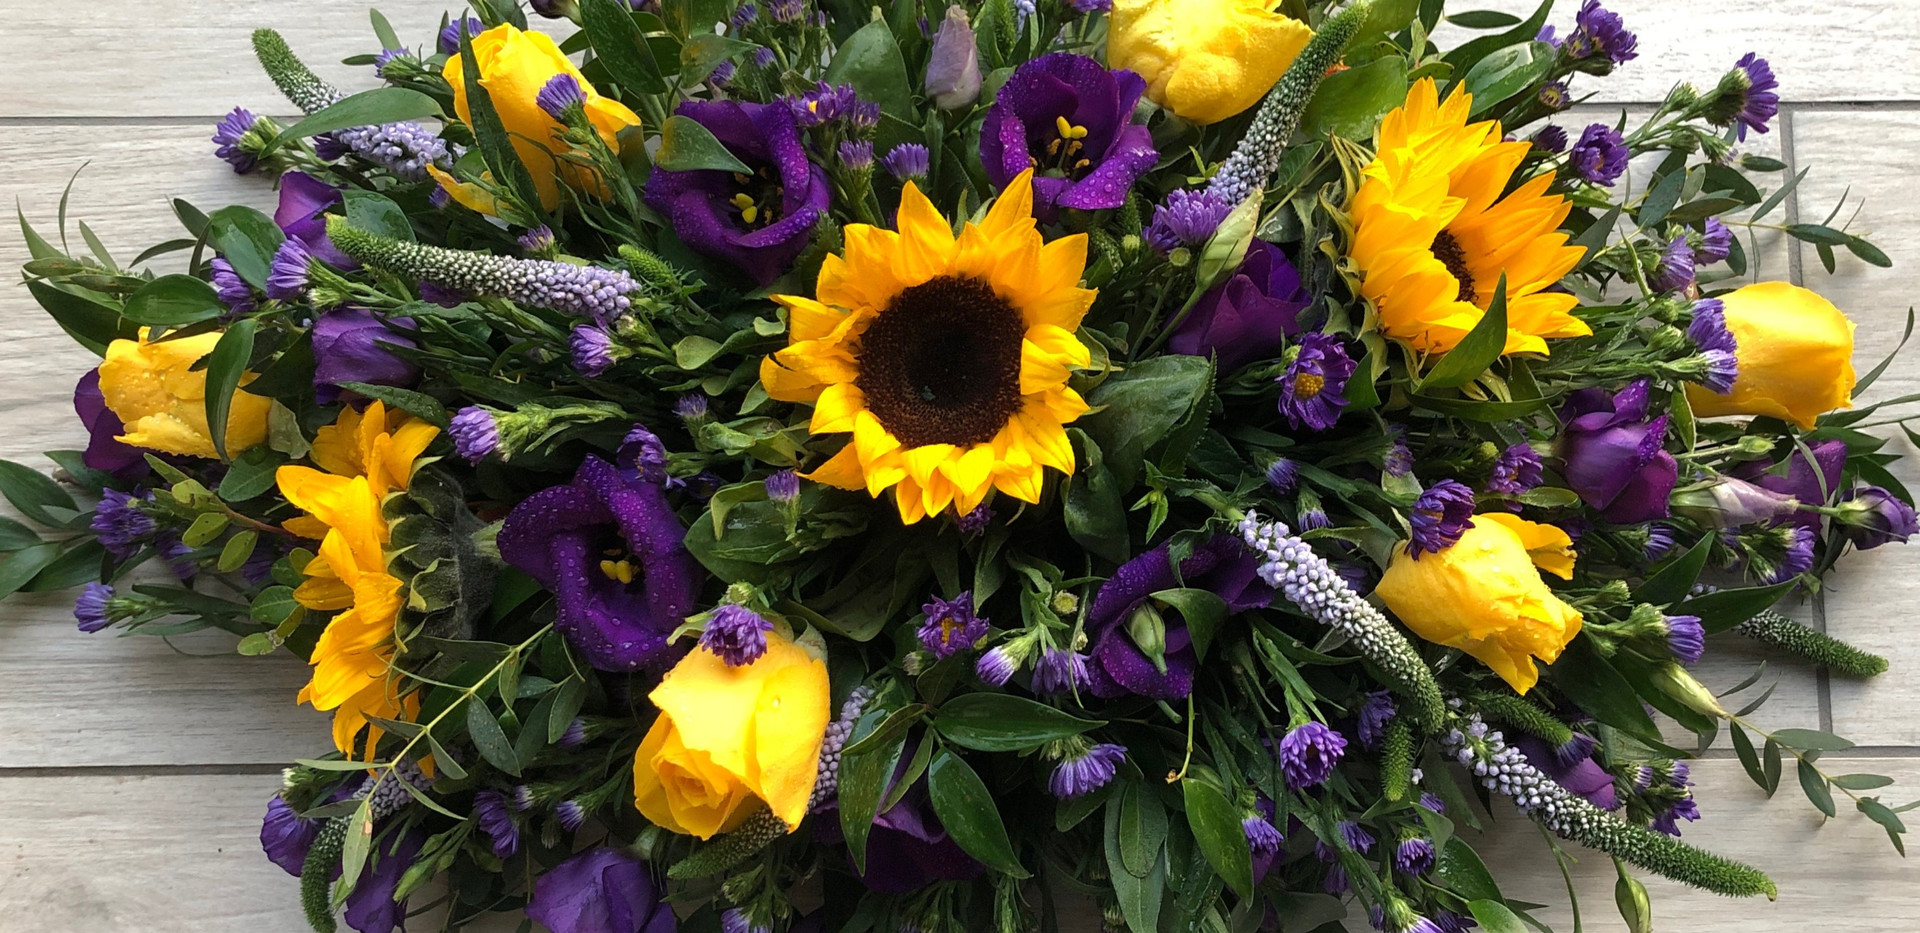 Funeral%20double%20ended%20sunflower_edi